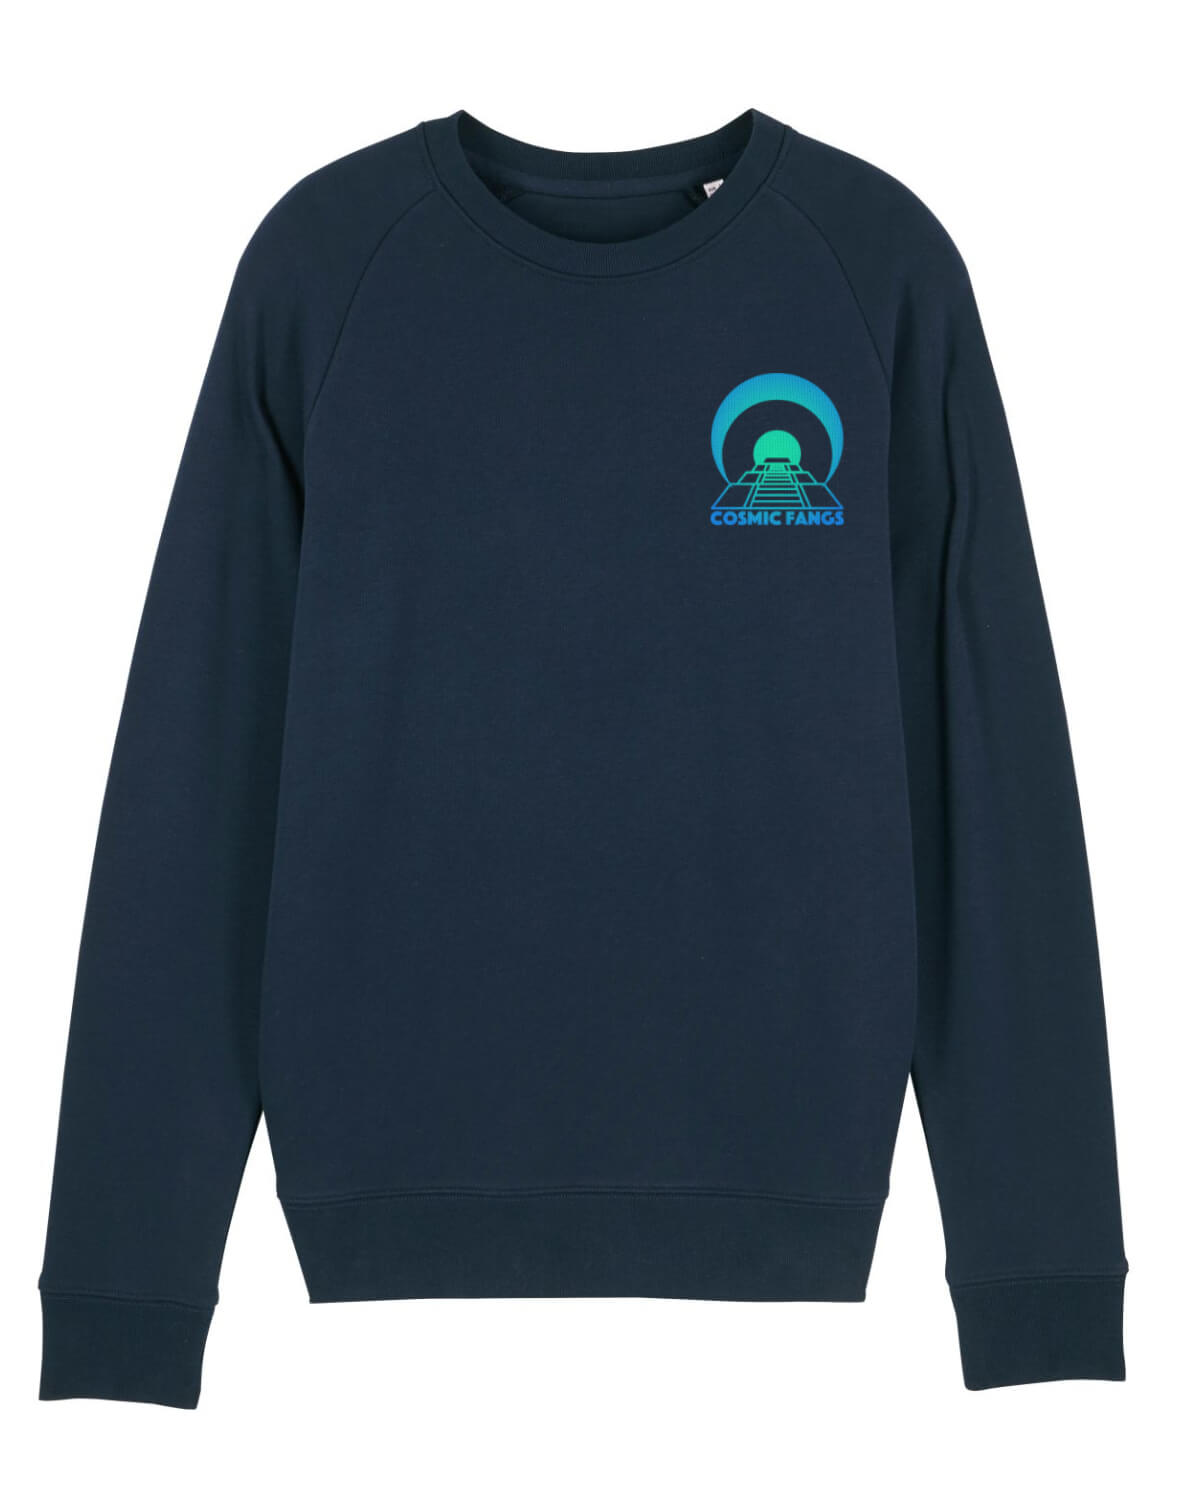 blue sweatshirt with green pyramid logo on the front